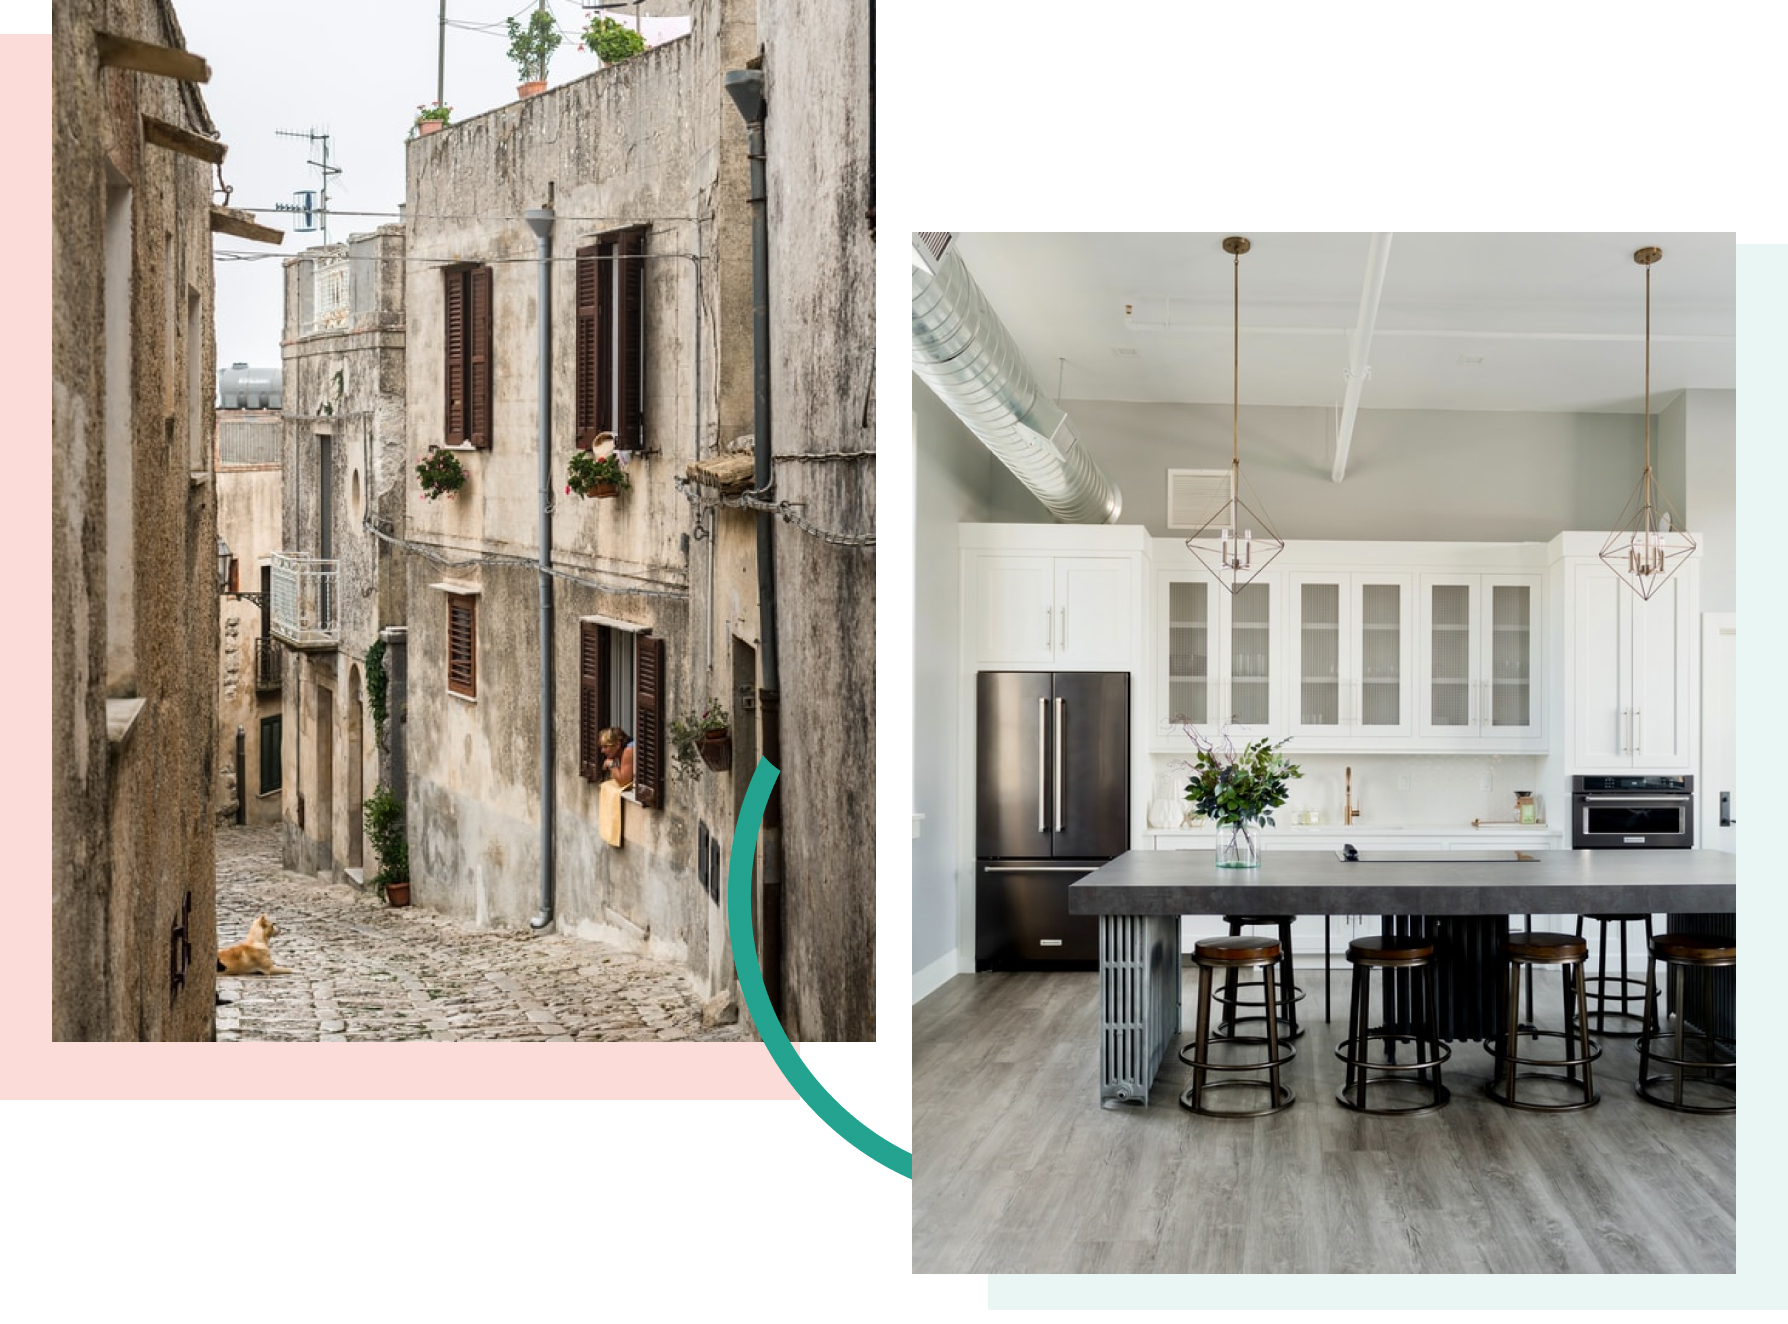 A concrete before/after case showing how an old 1 euro house turned into a modern, beautiful apartment.